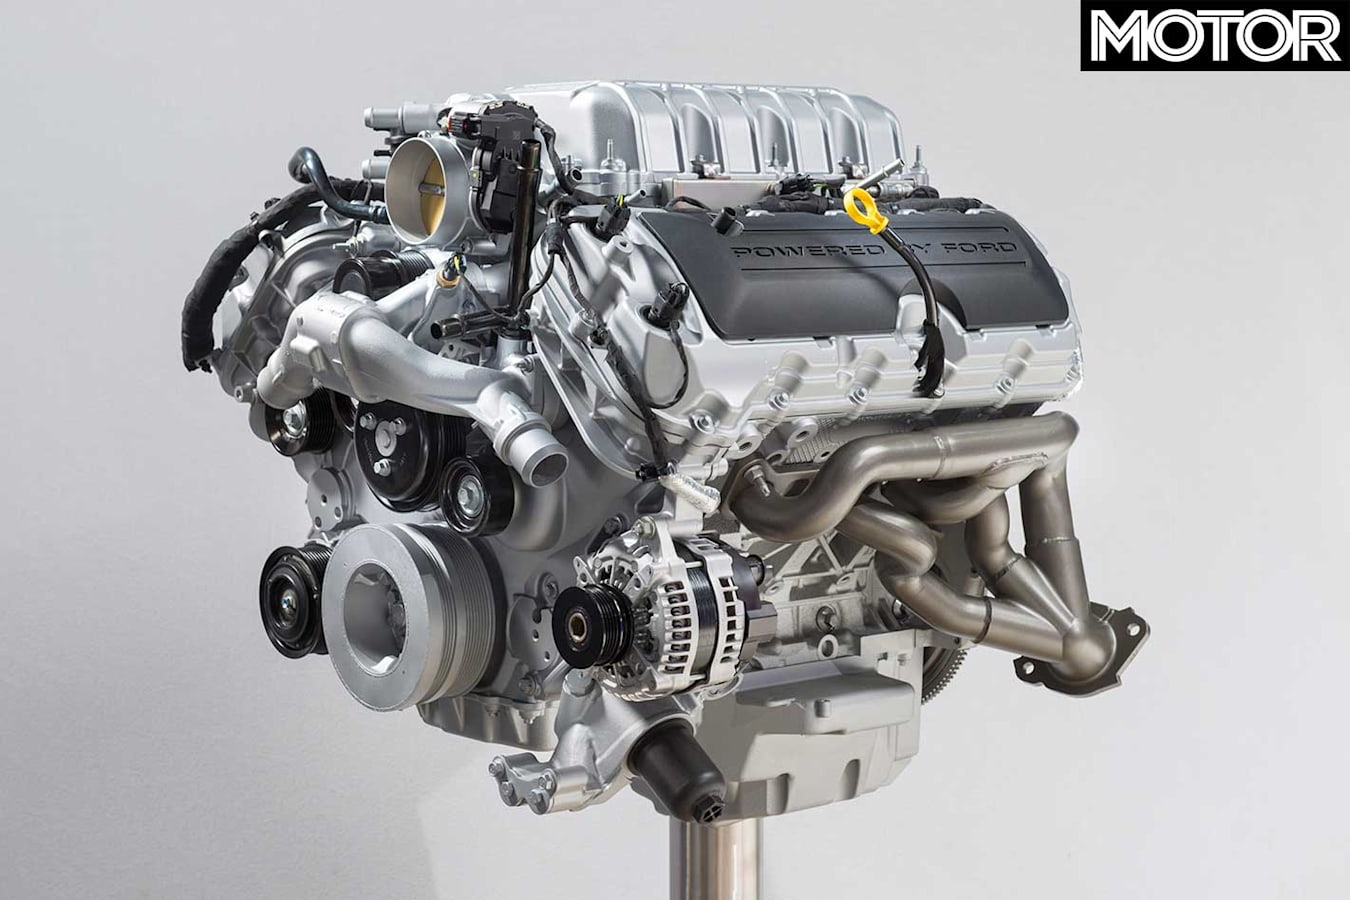 2020 Ford Mustang Shelby GT 500 Engine Jpg